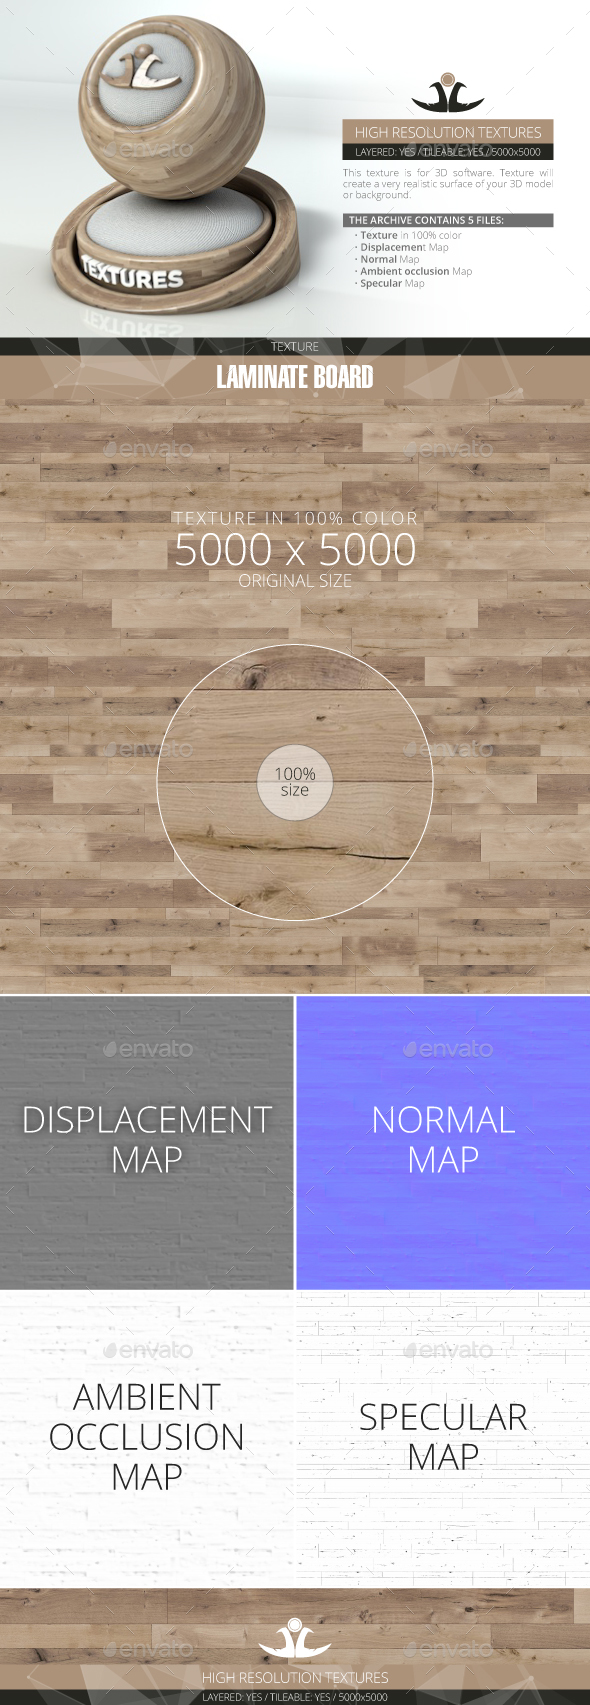 Laminate Board 85 - 3DOcean Item for Sale